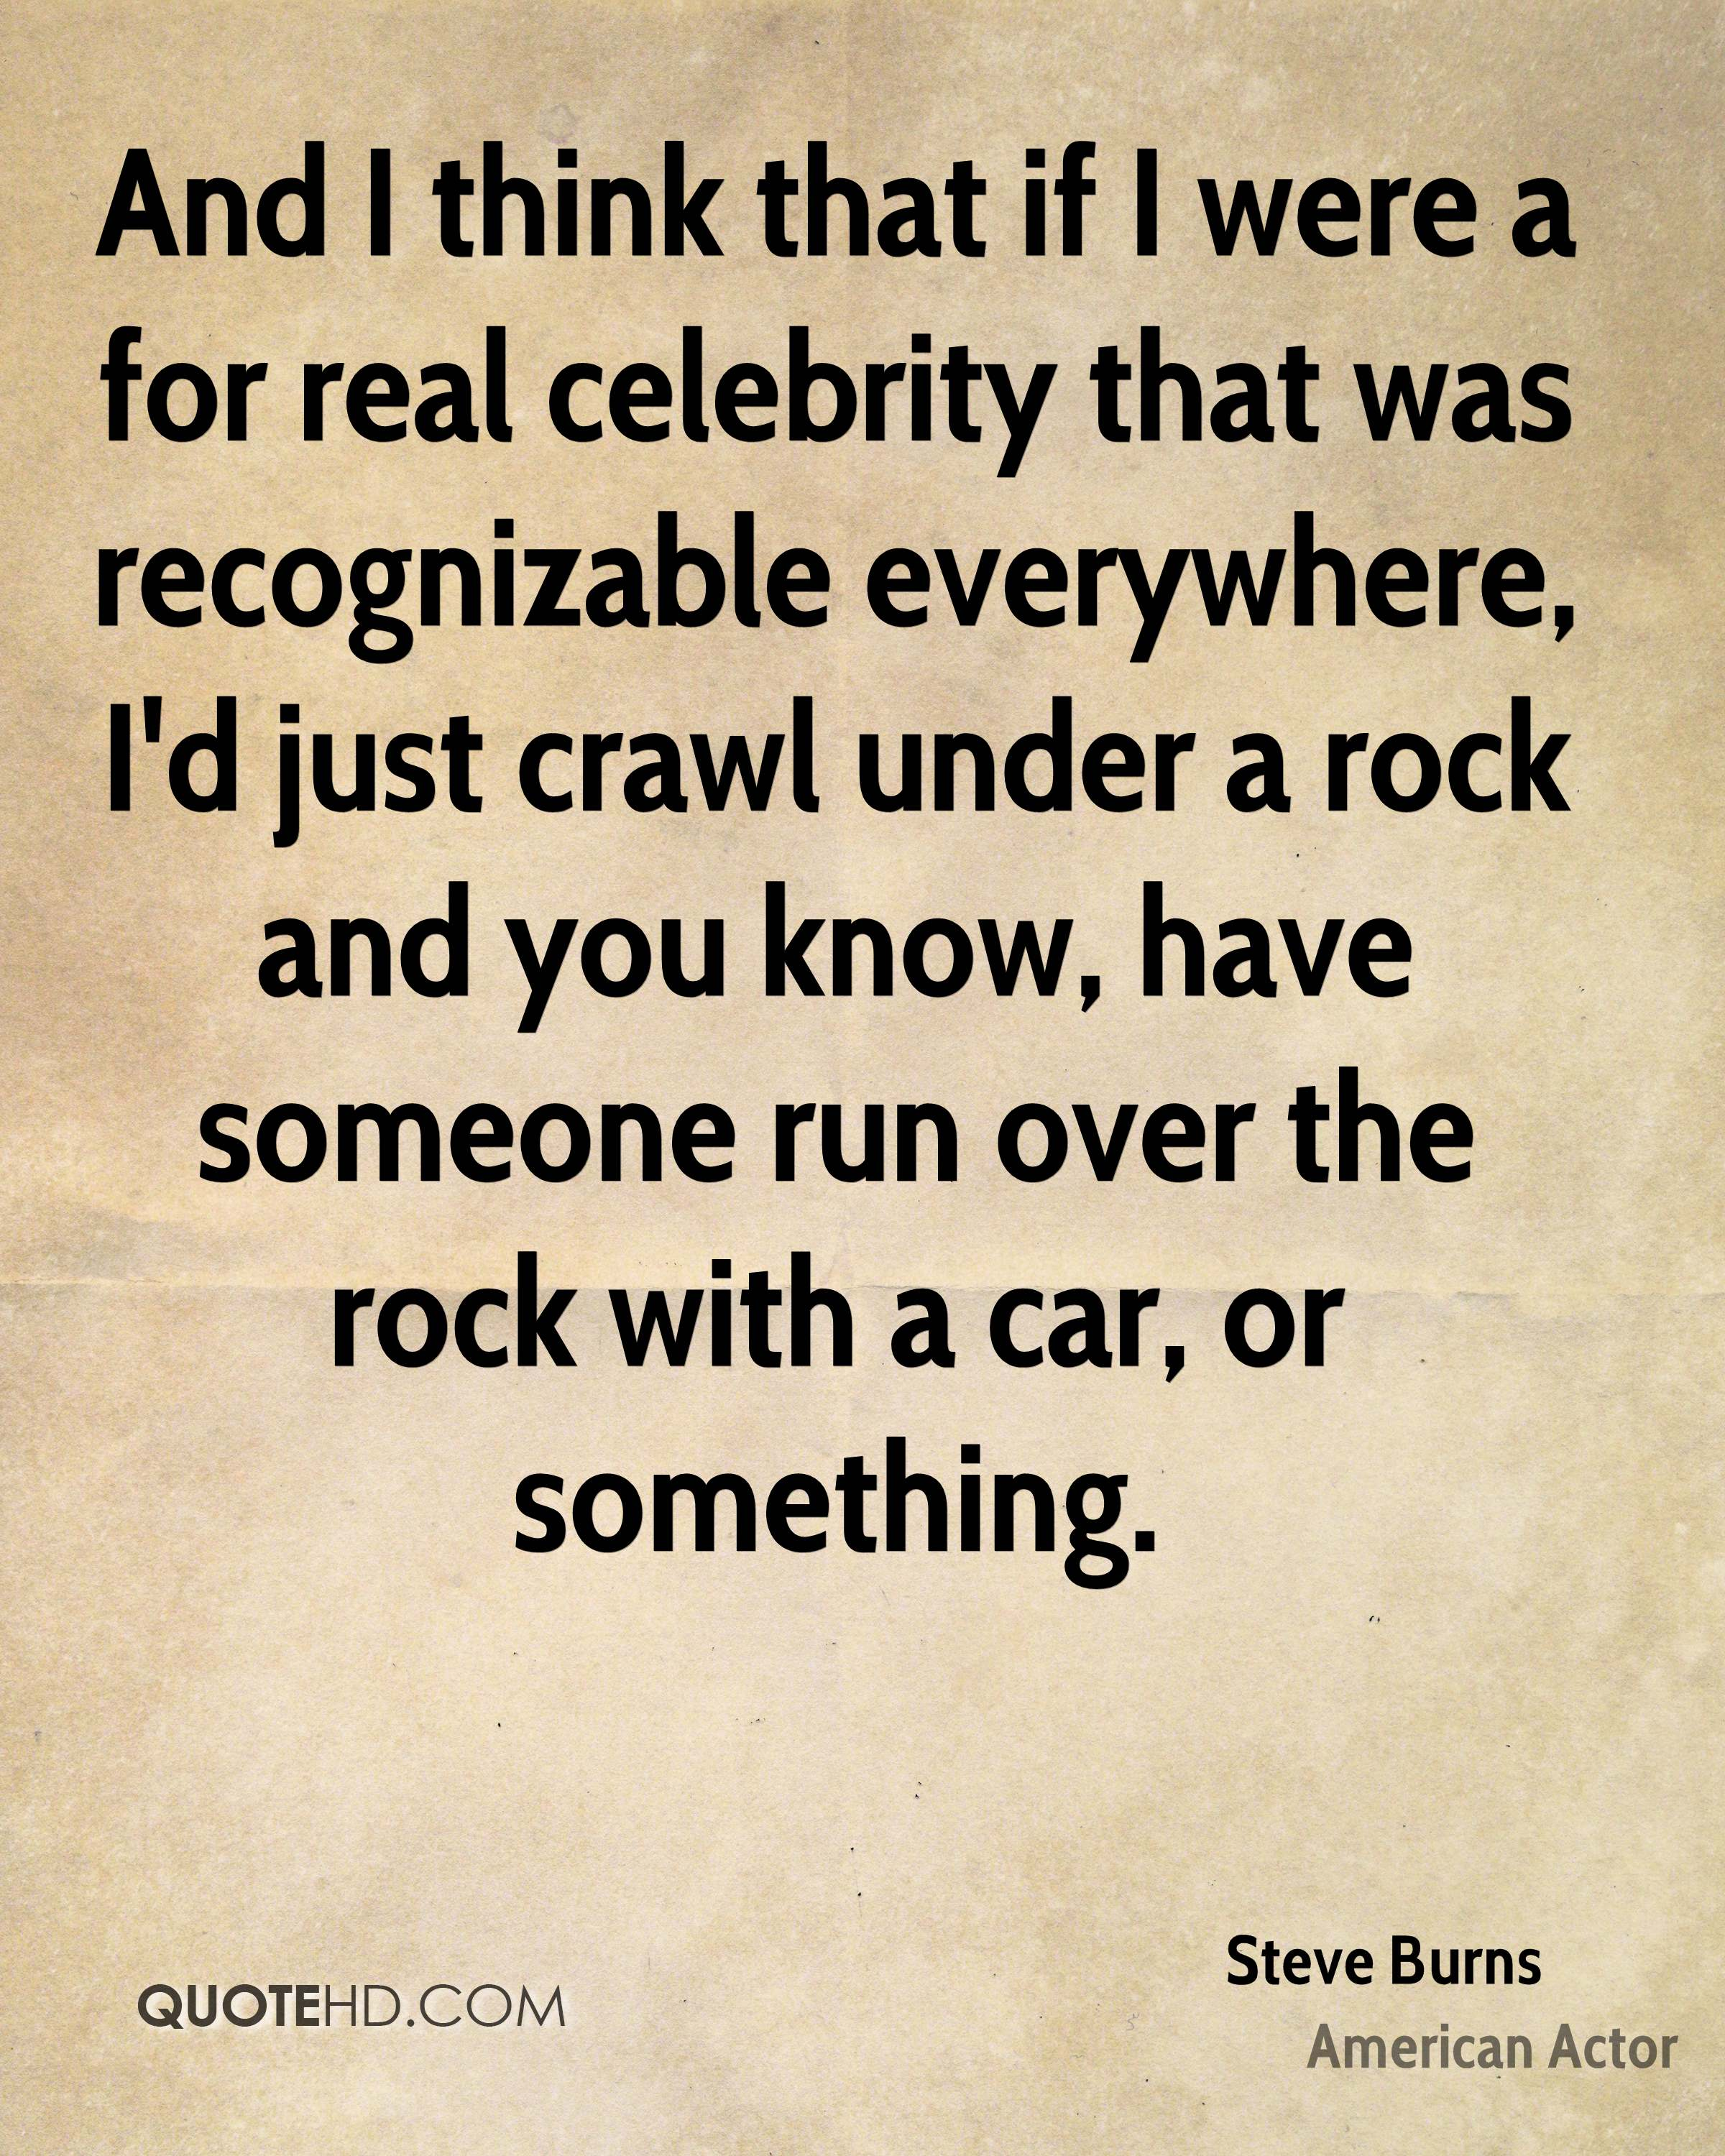 And I think that if I were a for real celebrity that was recognizable everywhere, I'd just crawl under a rock and you know, have someone run over the rock with a car, or something.